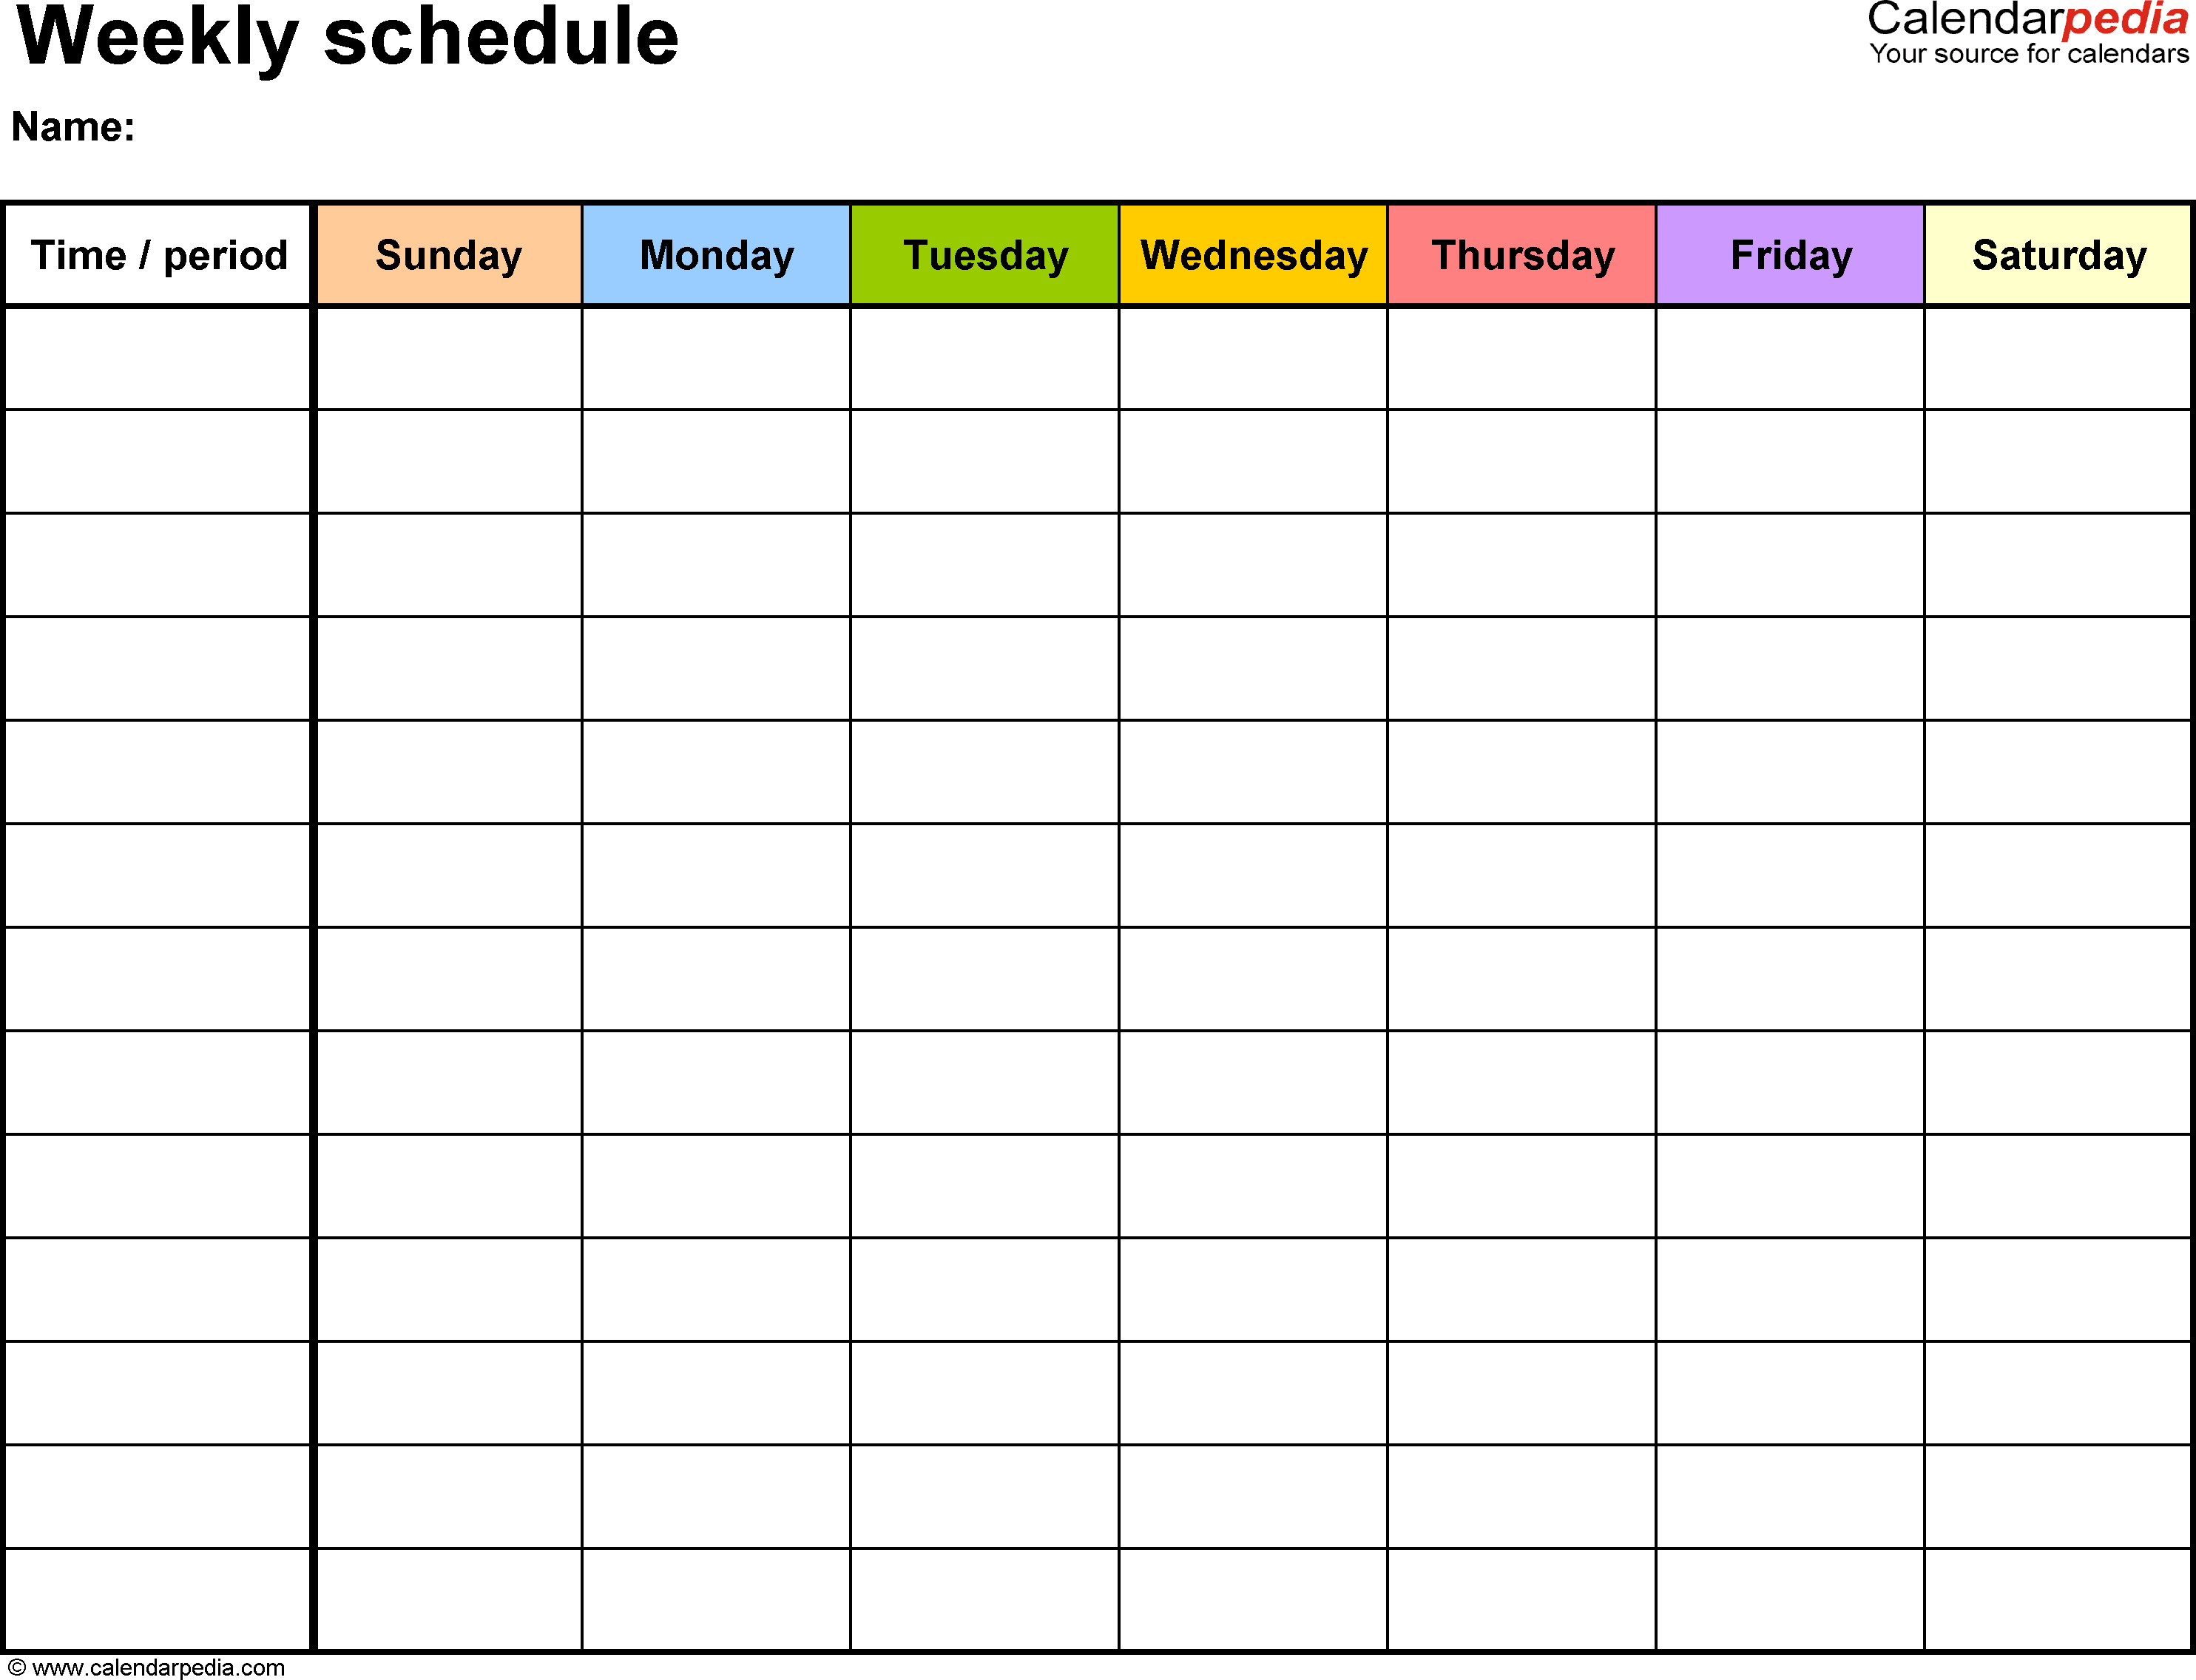 Free Weekly Schedule Templates For Word - 18 Templates regarding Weekly Calendar Template 7 Day